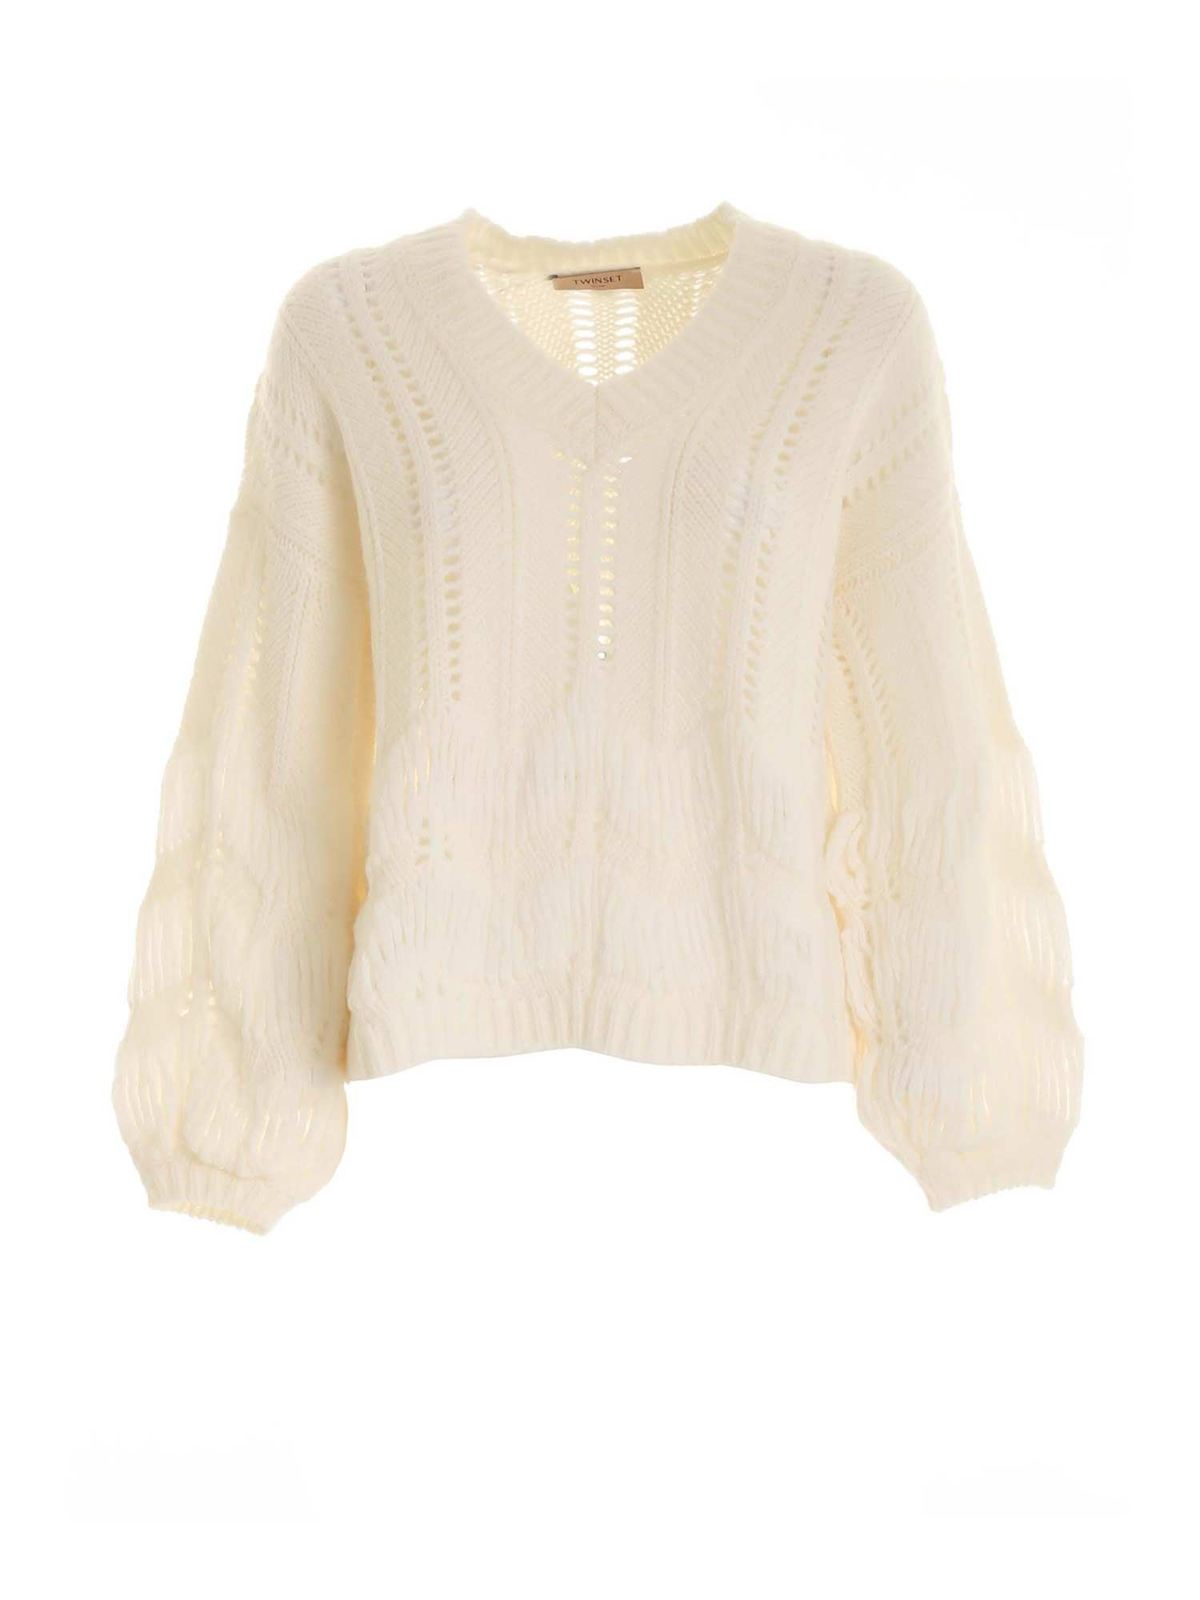 Twinset TRICOT-EFFECT PULLOVER IN CREAM COLOR